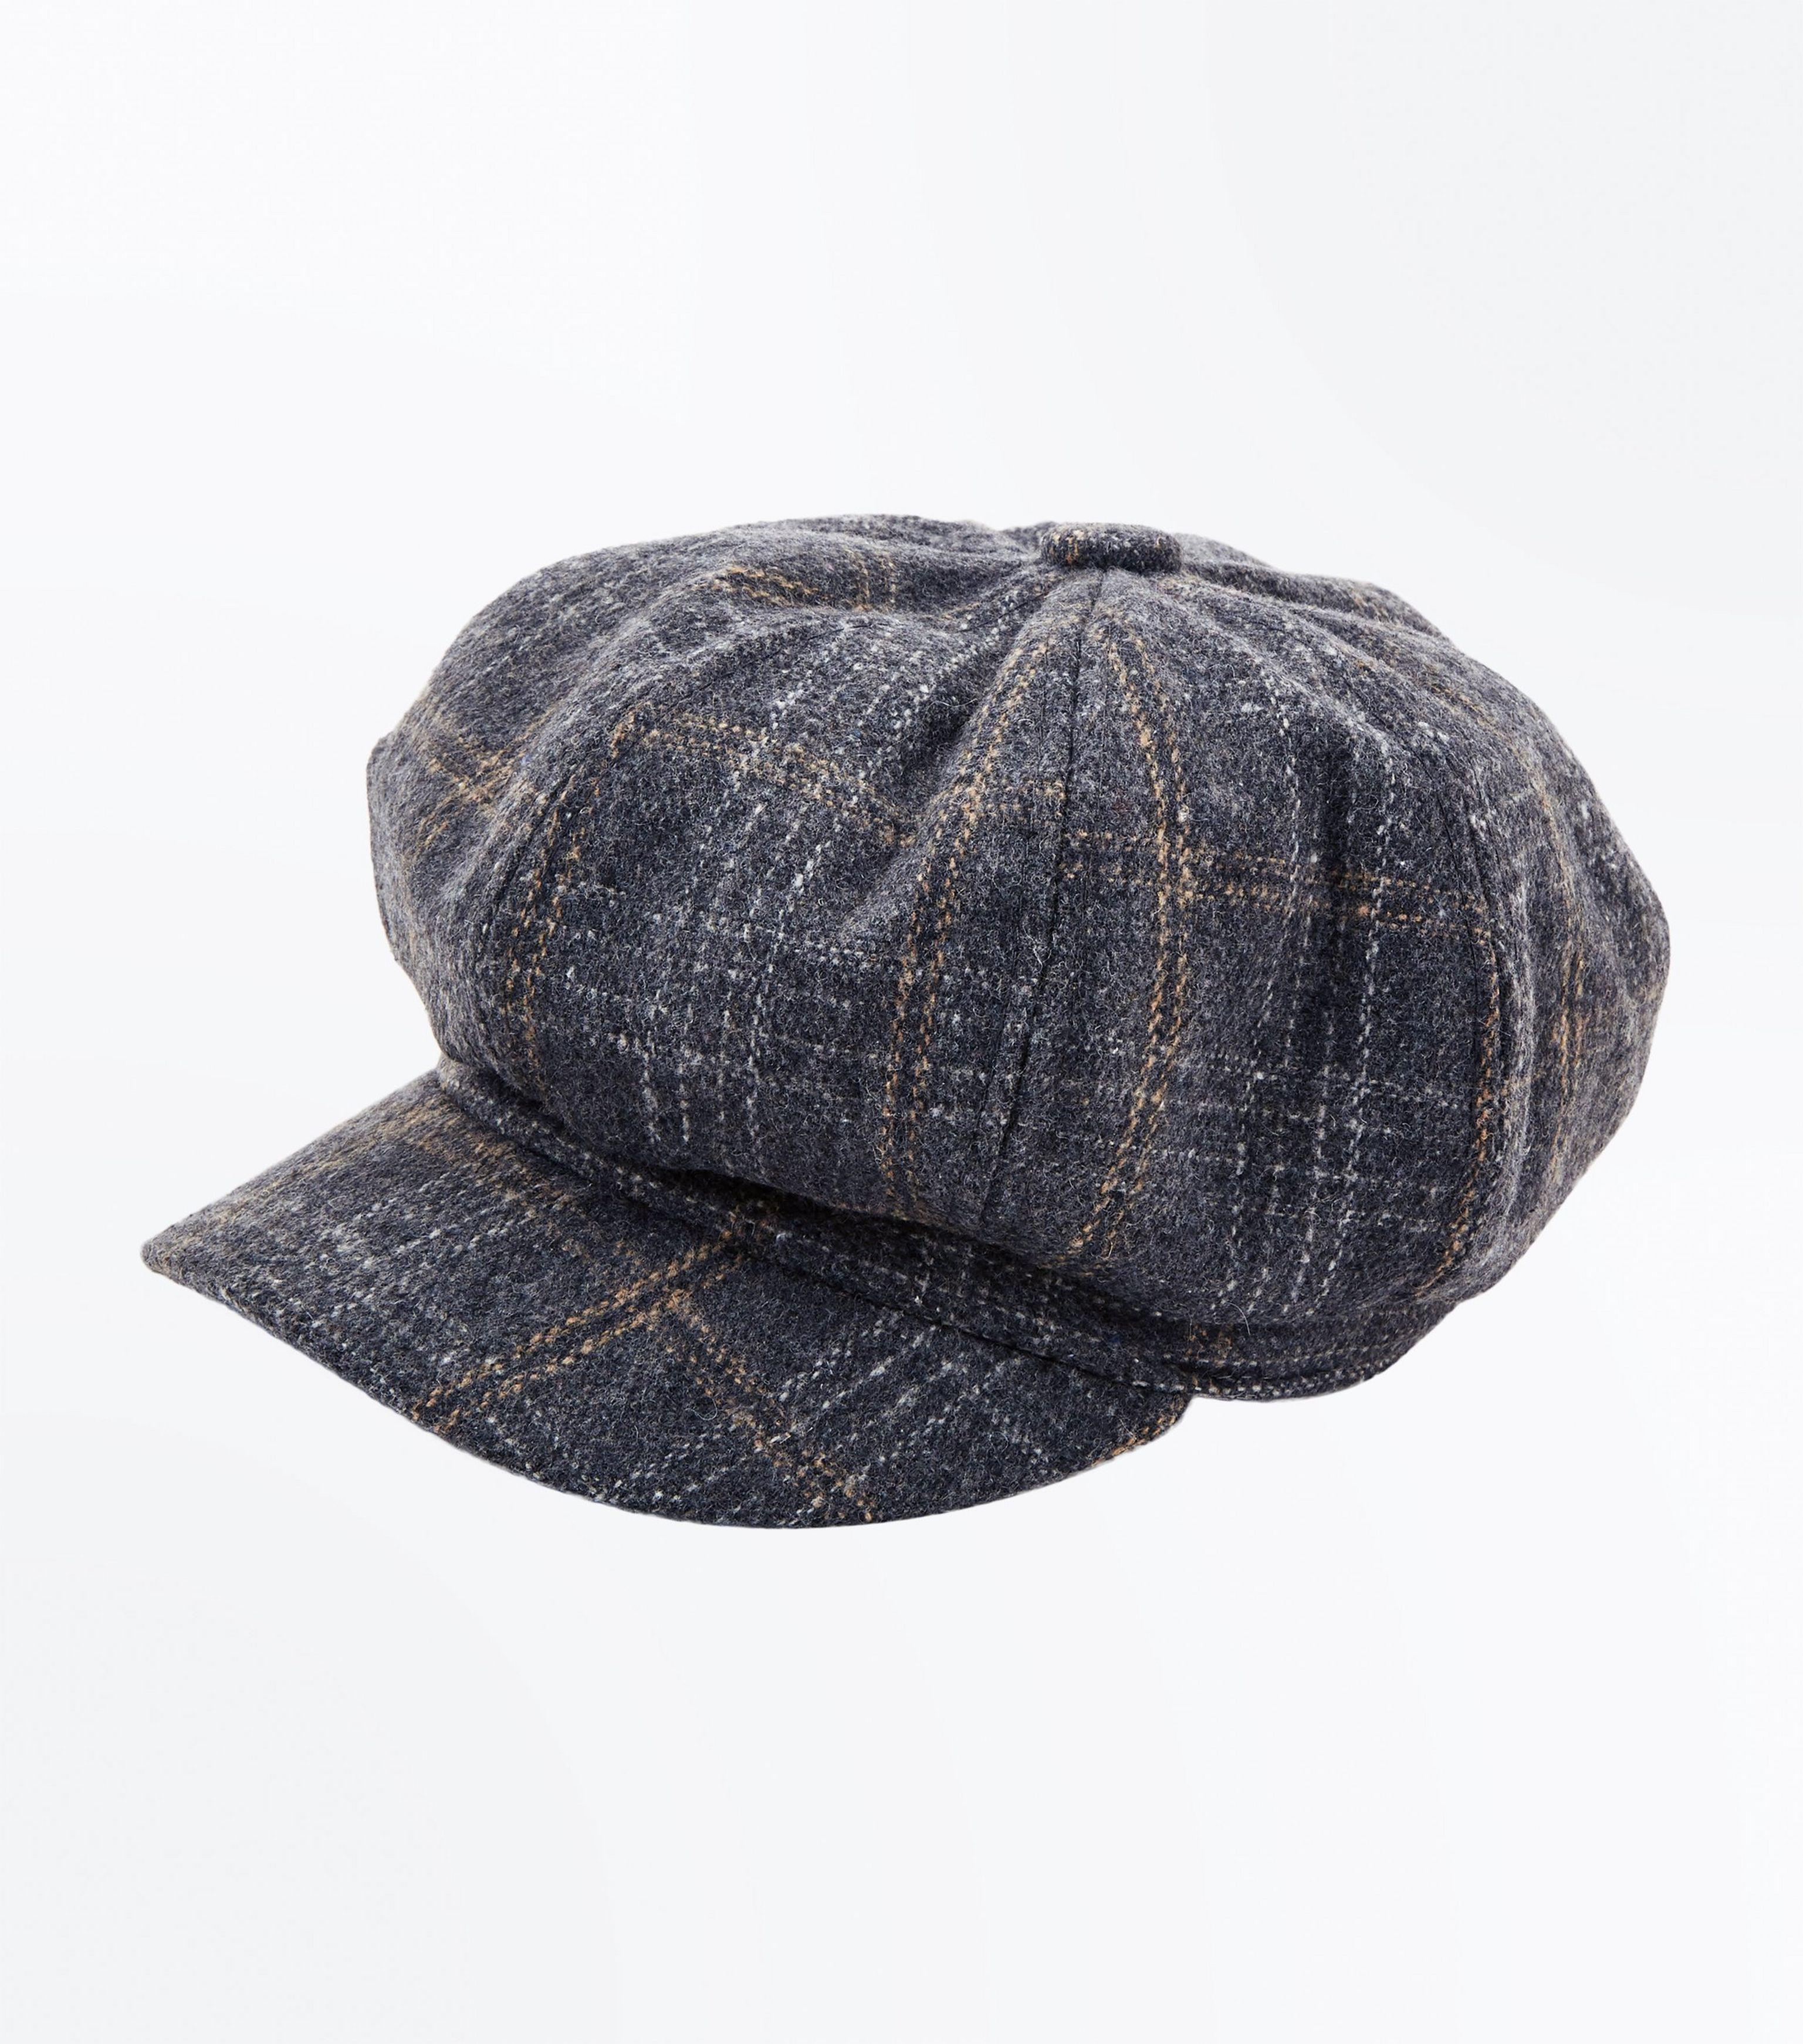 34c3e0531a696 New Look Grey Check Baker Boy Hat in Gray for Men - Lyst